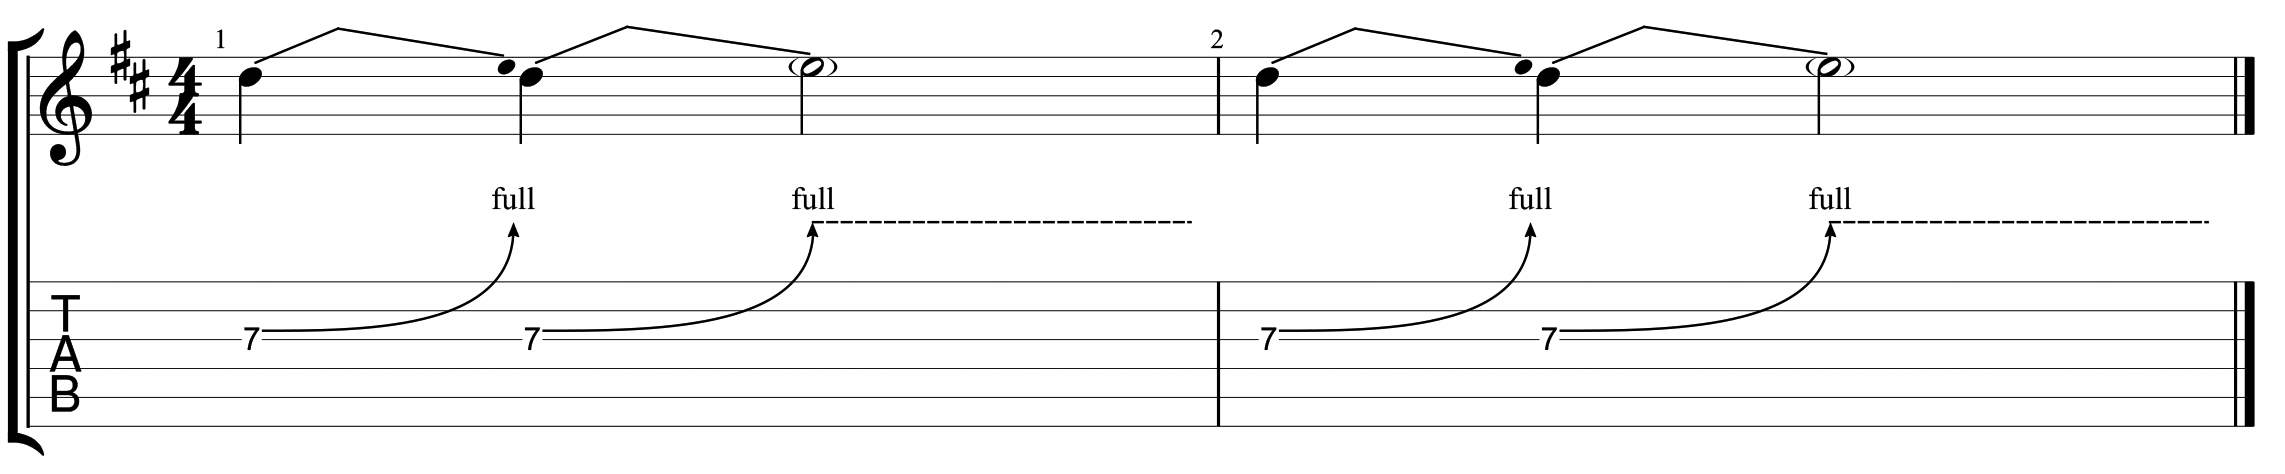 How to read guitar tab 10